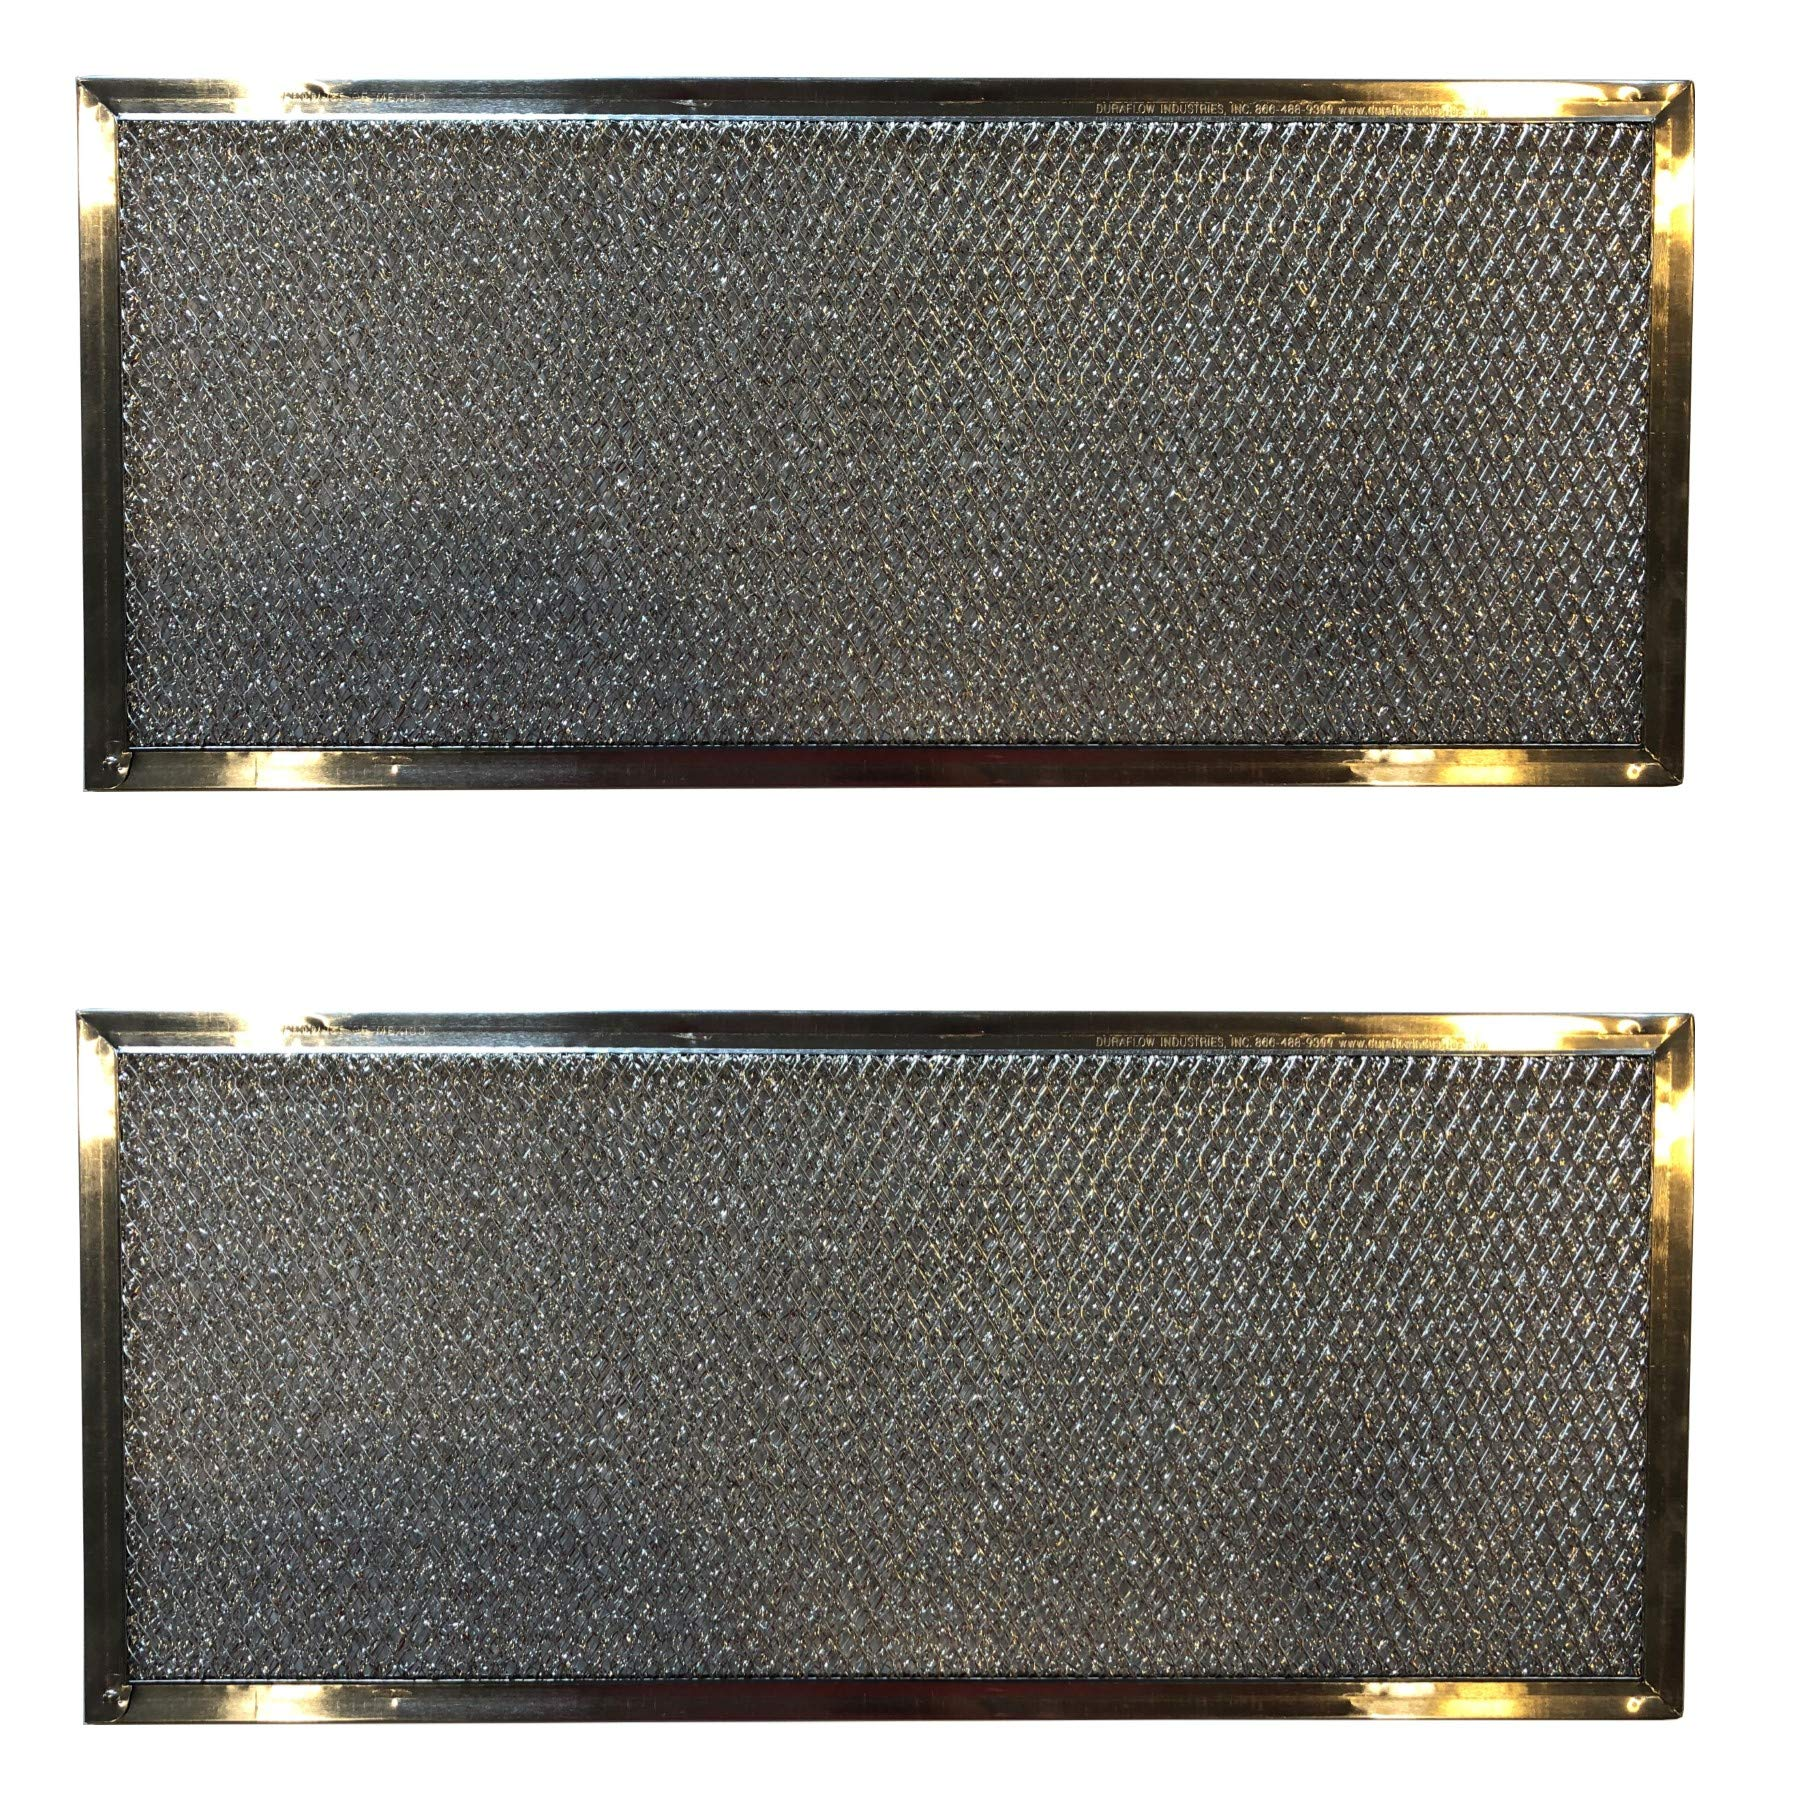 Replacement Aluminum Range Filters Compatible with Maytag Jenn Air 71002111   6 7/8 X 15 5/8 X 3/32